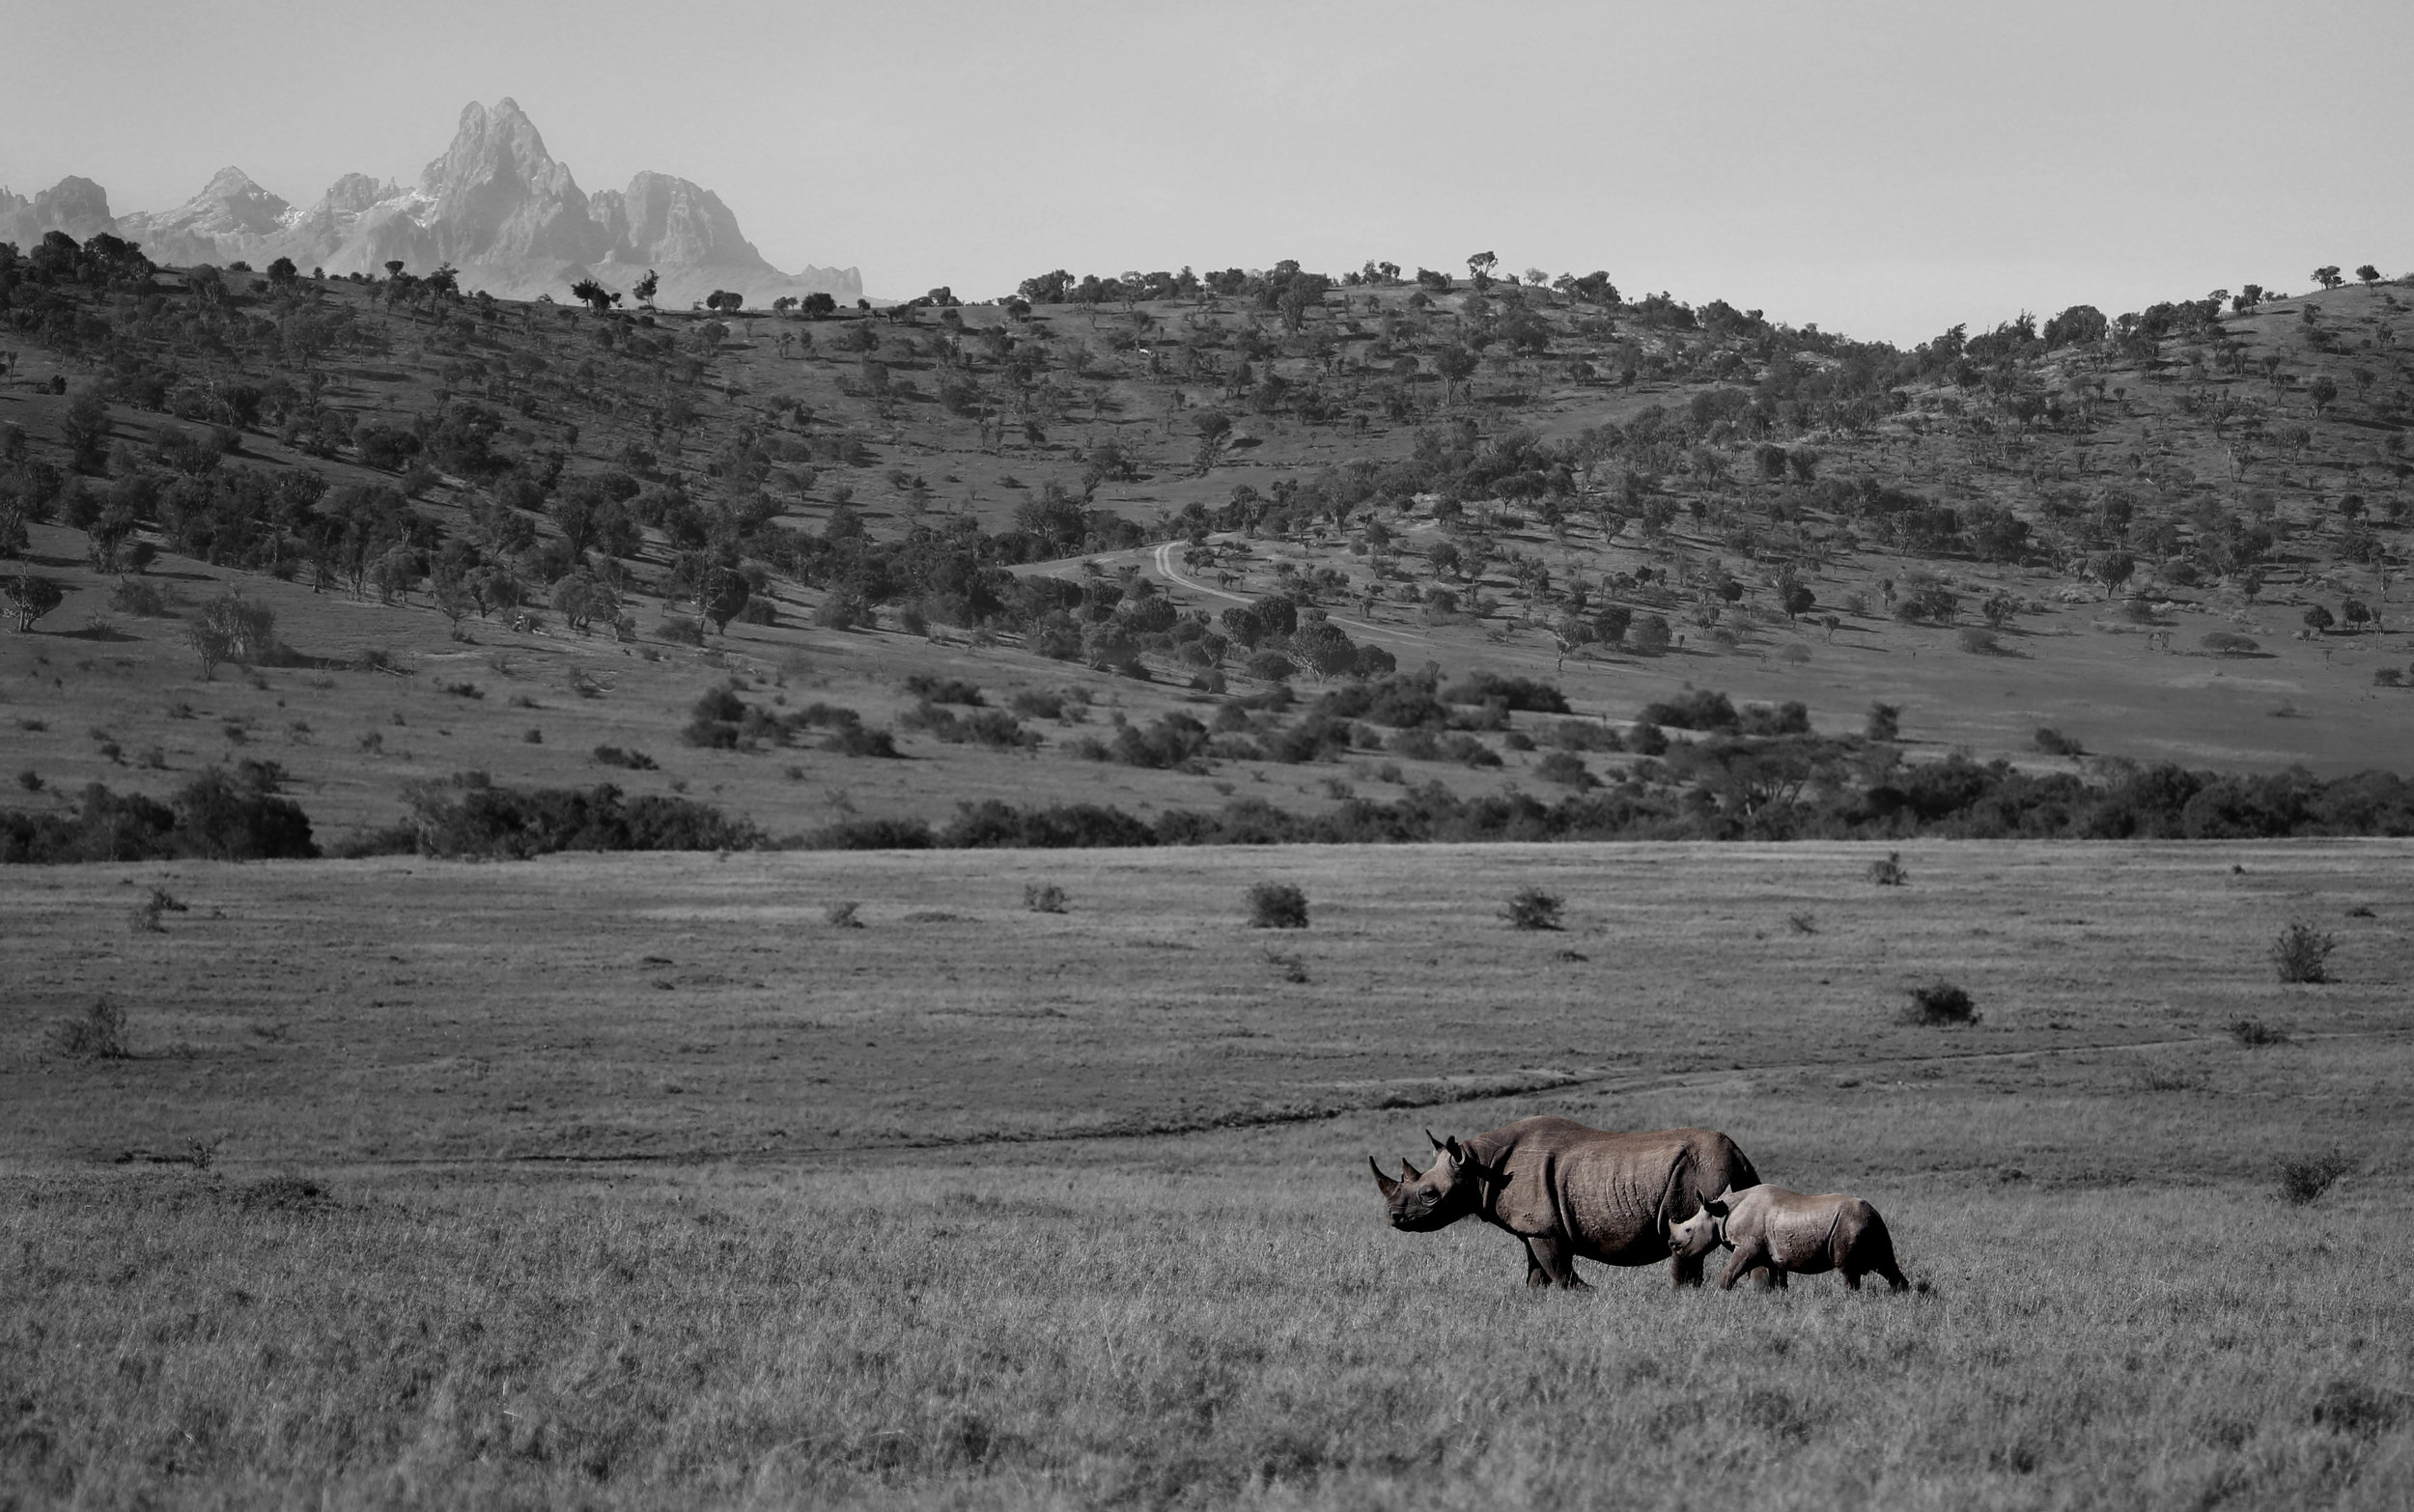 Photograph by Kirsten Brophy, 2017 Lewa Conservancy